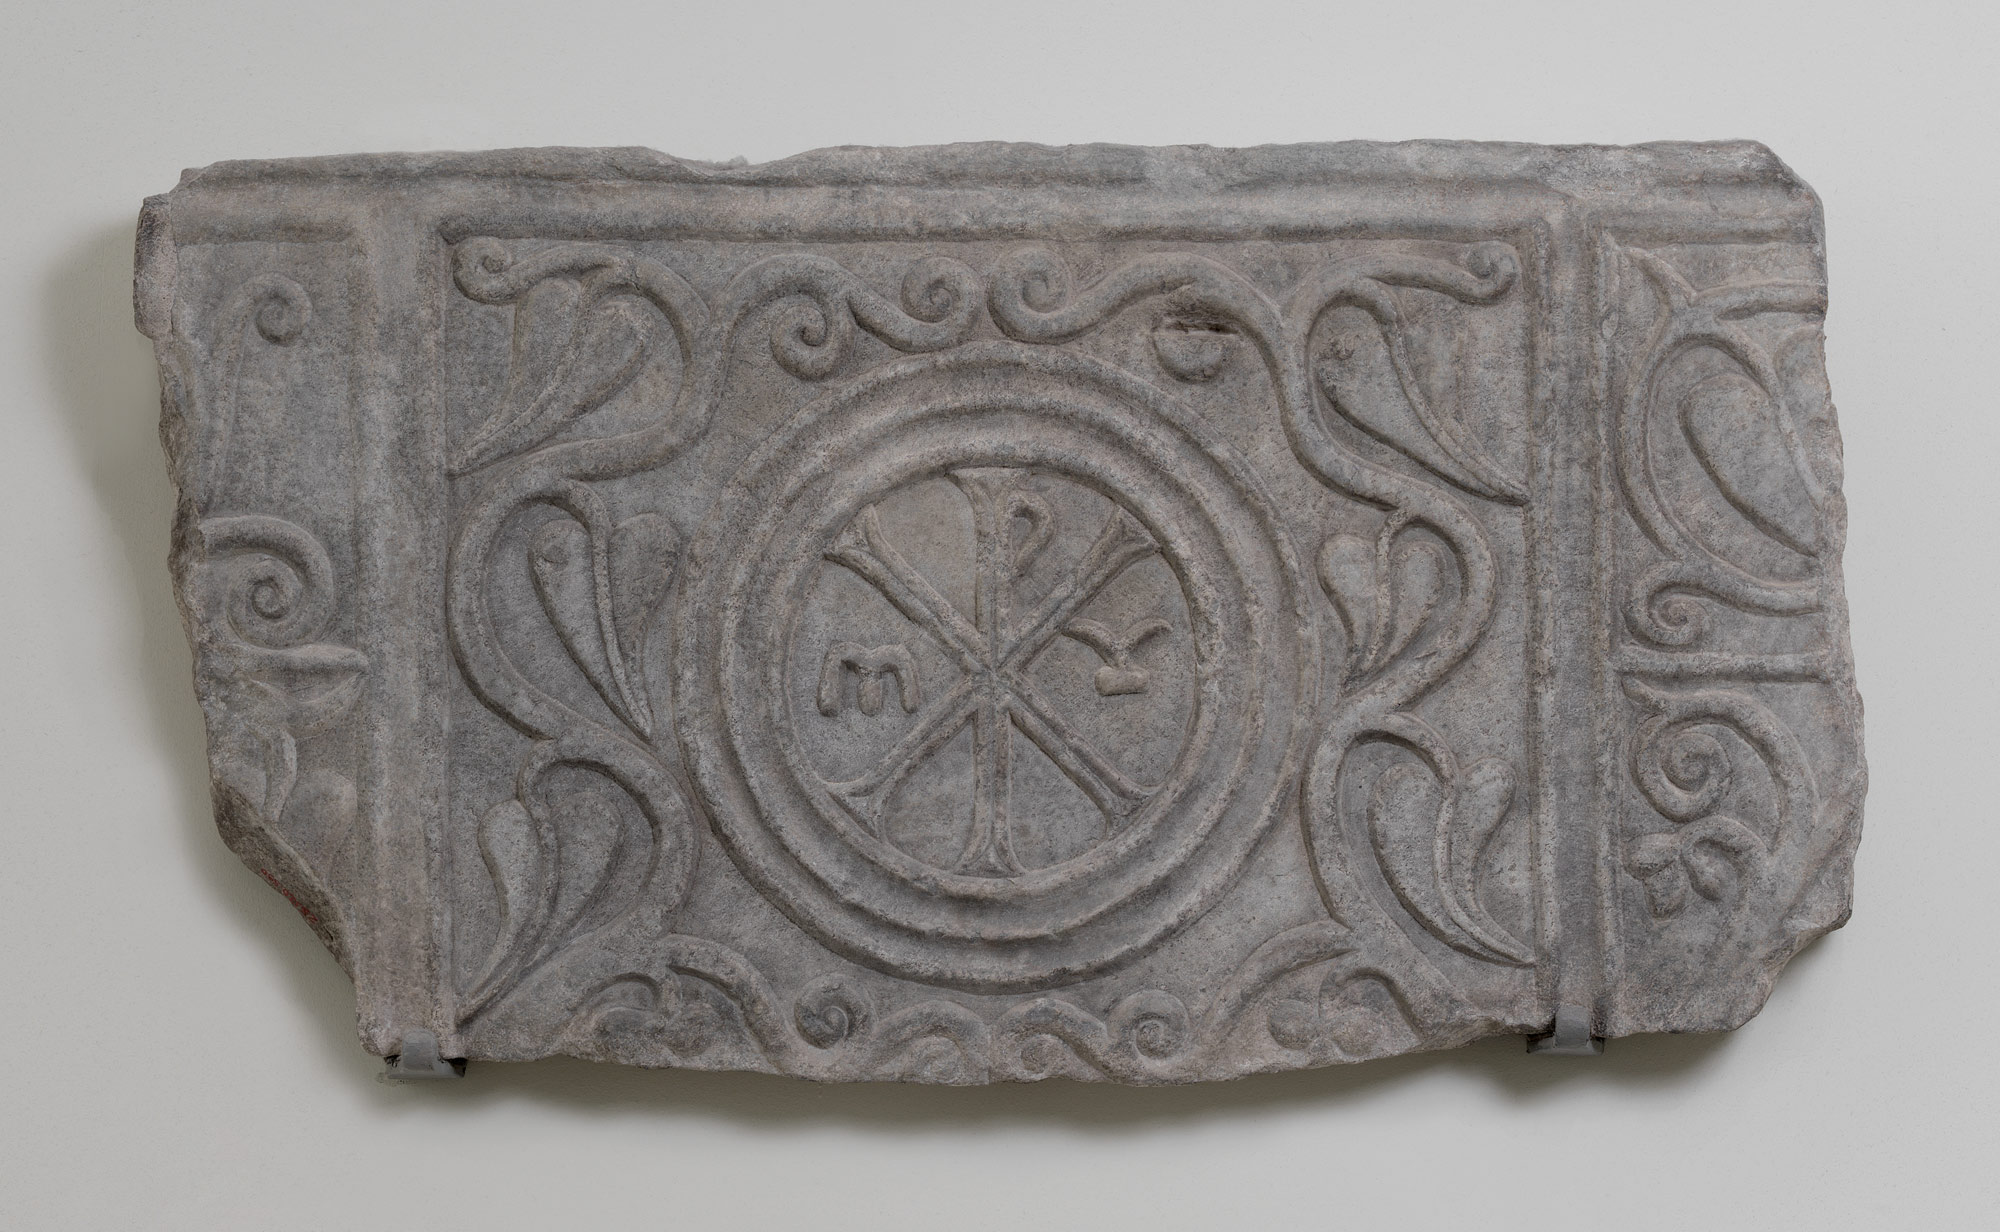 Fragment of a Marble Sarcophagus